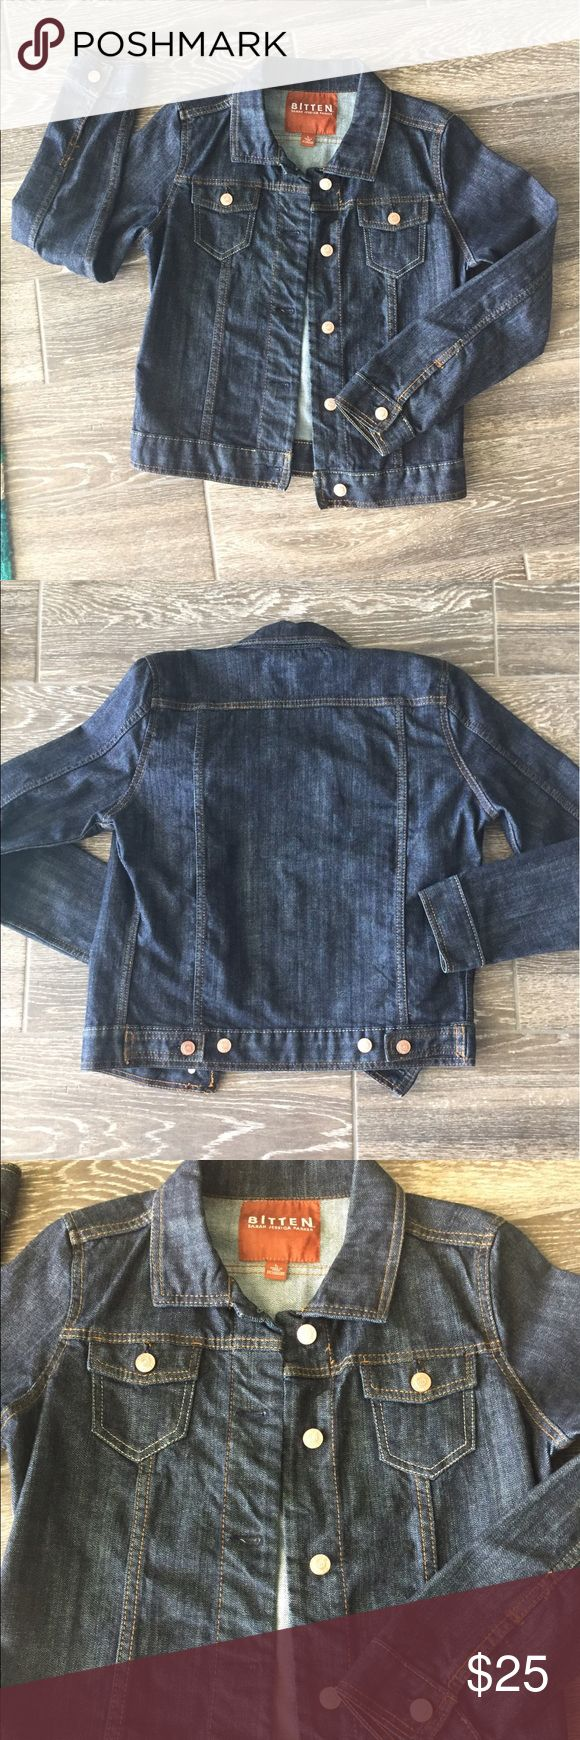 Bitten denim jacket by Sarah Jessica Parker Dress this dark wash denim jacket up or down. Jacket by Bitten which is SJP's line. EUC. PLEASE NOTE, tag says large but this is a small fit! I'm usually between small and medium and it's snug on me.   :( Bitten by Sarah Jessica Parker Jackets & Coats Jean Jackets